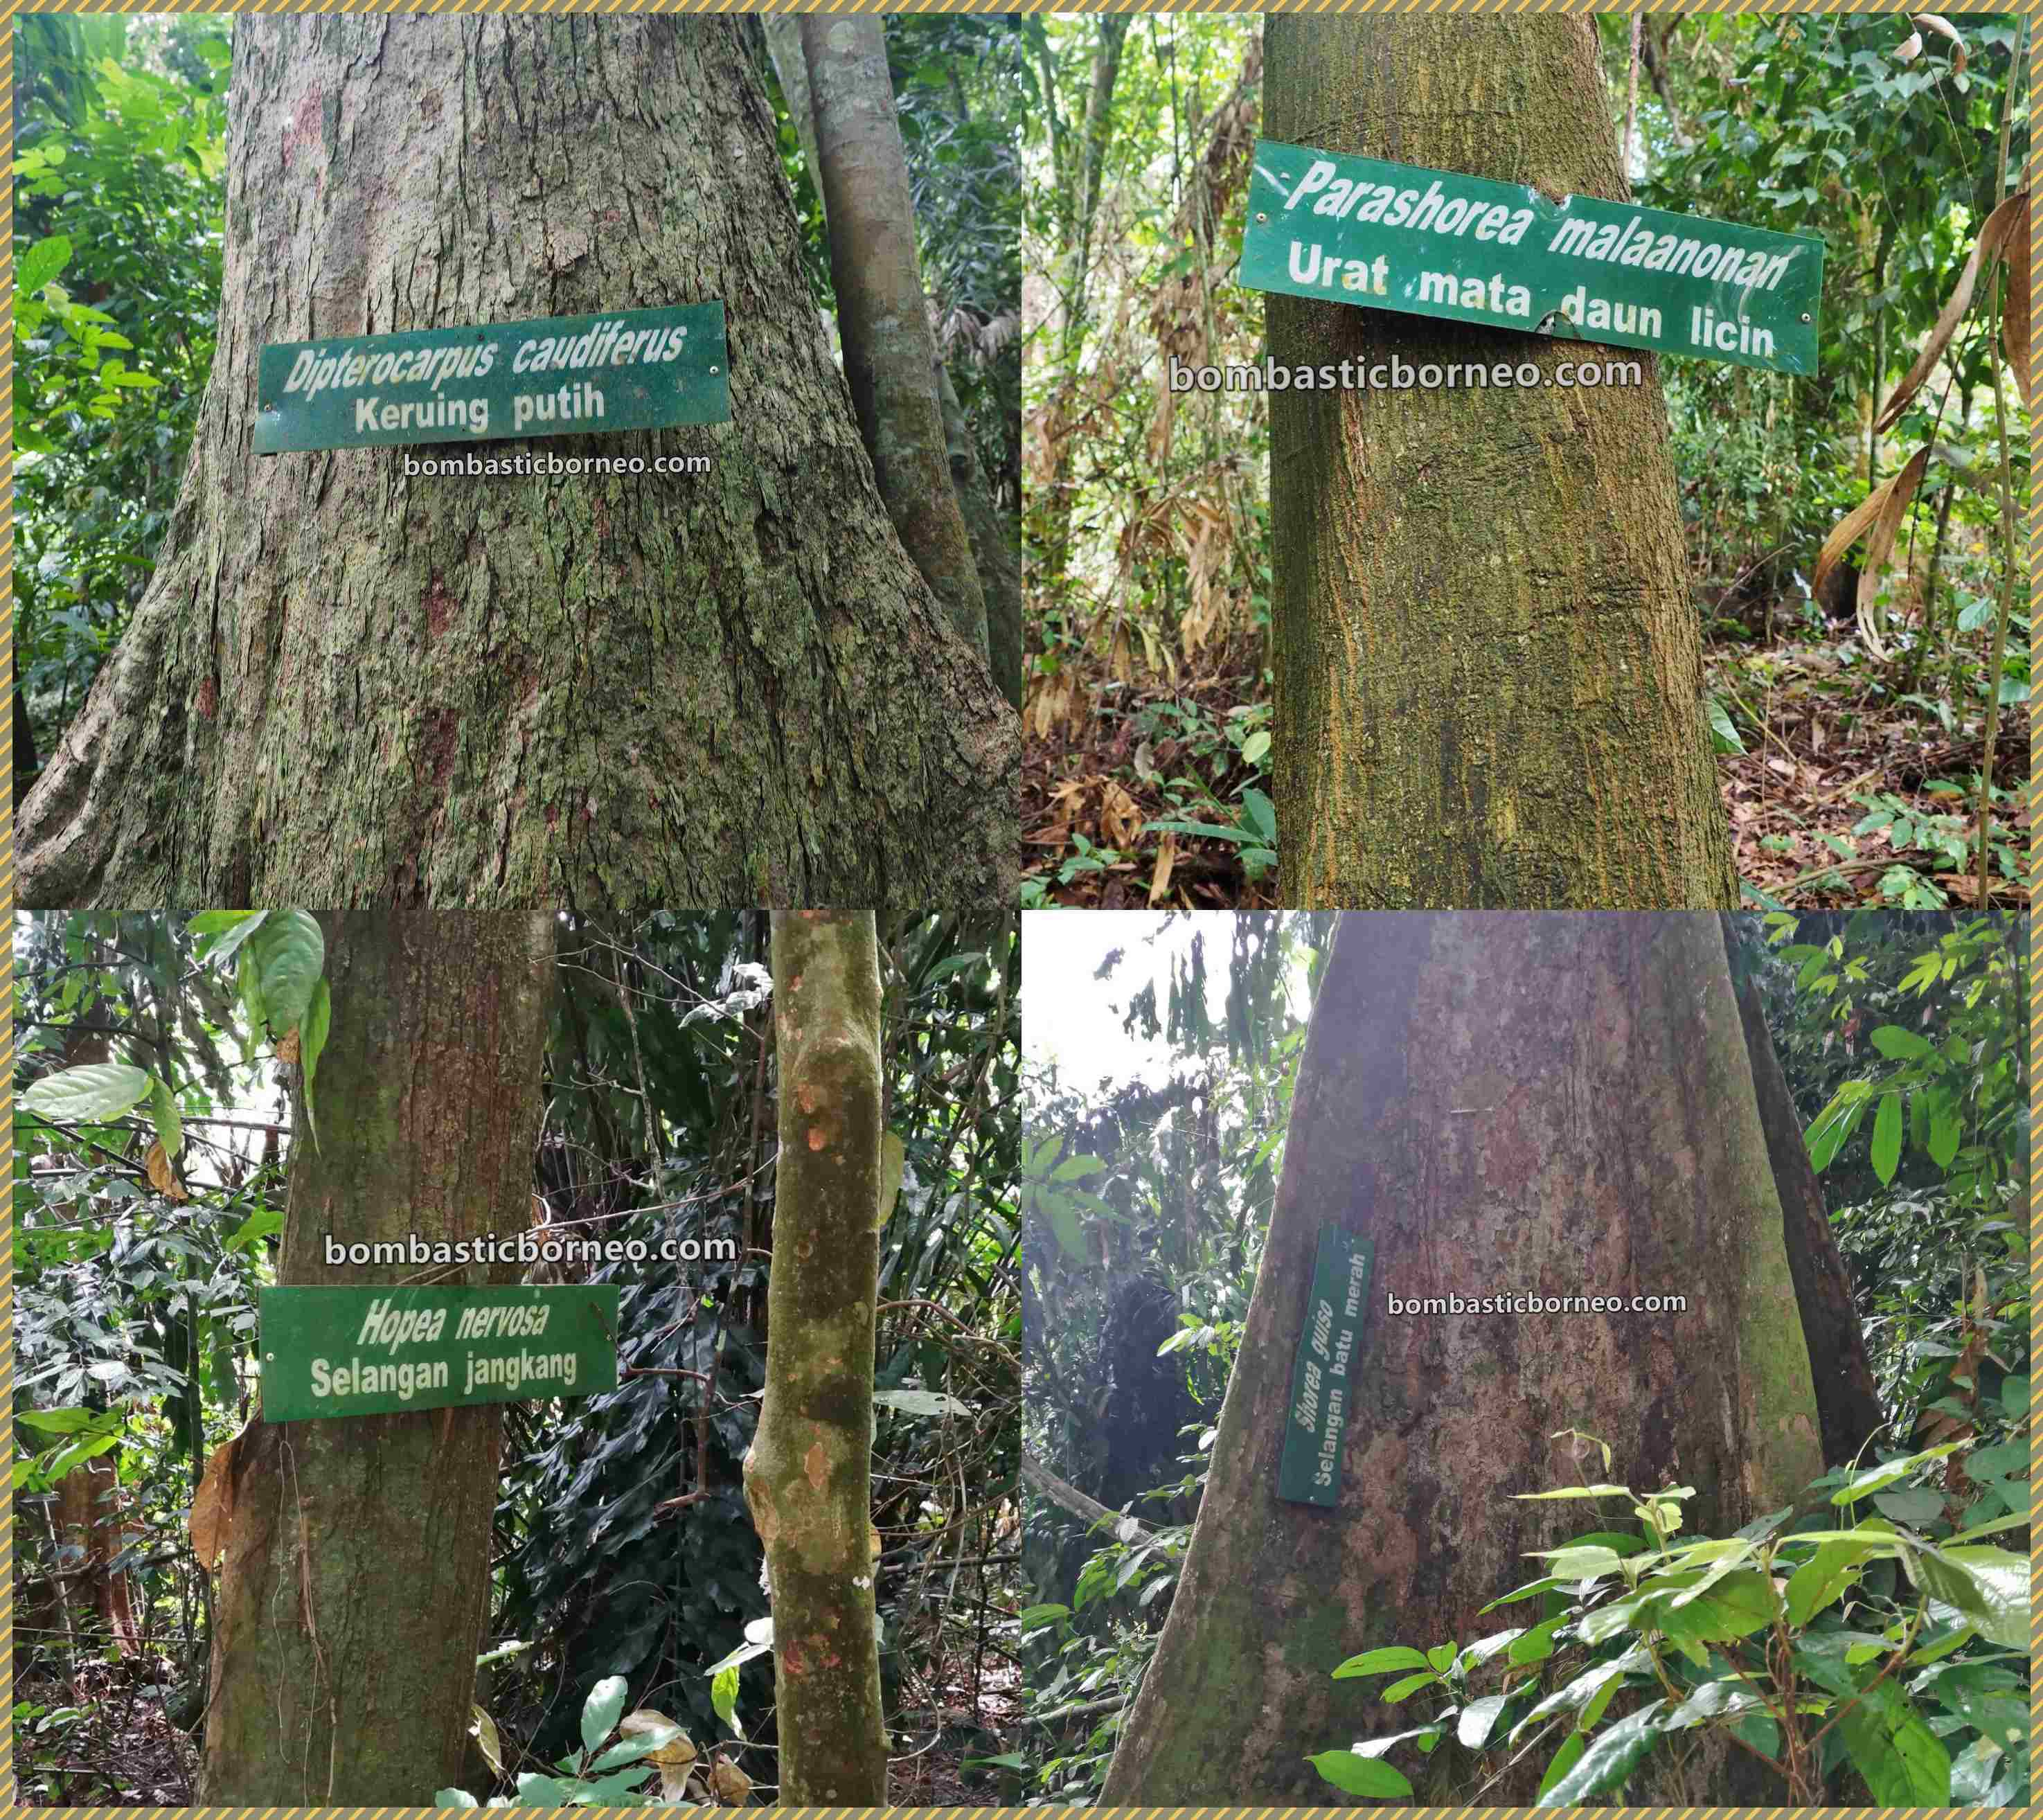 Pusat Sejadi, Gemok Hill Forest Reserve, adventure, nature, primary jungle, hiking, exploration, destination, Malaysia, Tourism, tourist attraction, travel guide, 婆罗洲马来西亚, 斗湖旅游景点, 沙巴森林保护区,